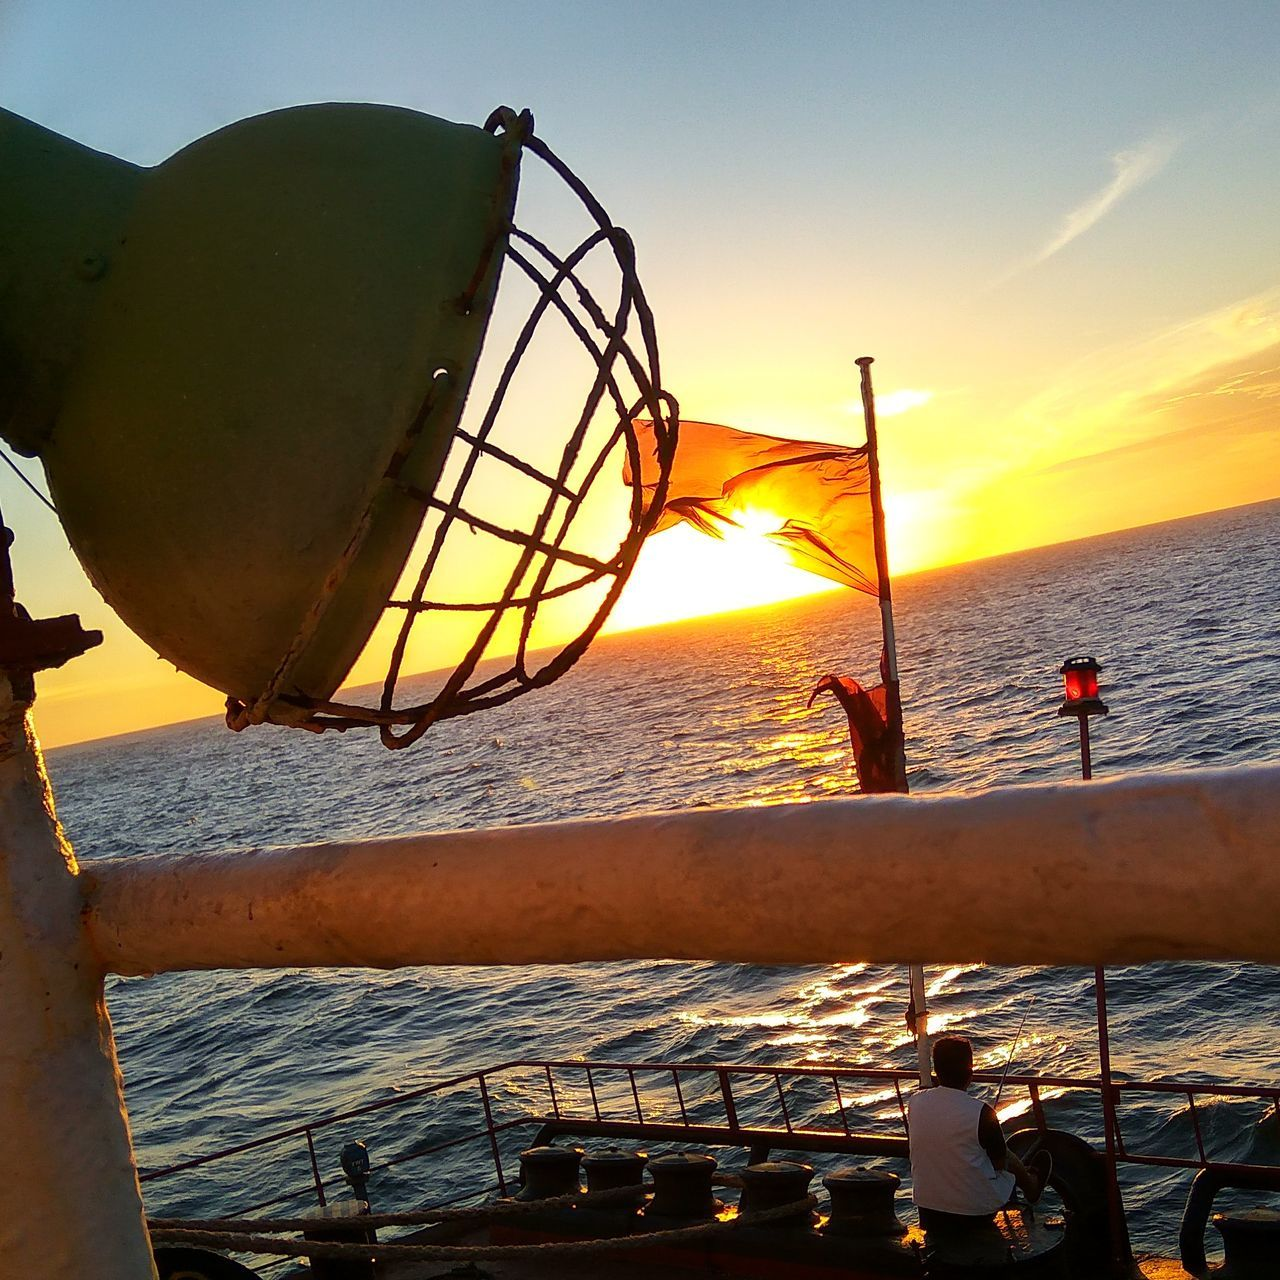 sea, water, sunset, nature, sky, beauty in nature, nautical vessel, men, scenics, fishing, real people, horizon over water, outdoors, transportation, lifestyles, vacations, day, people